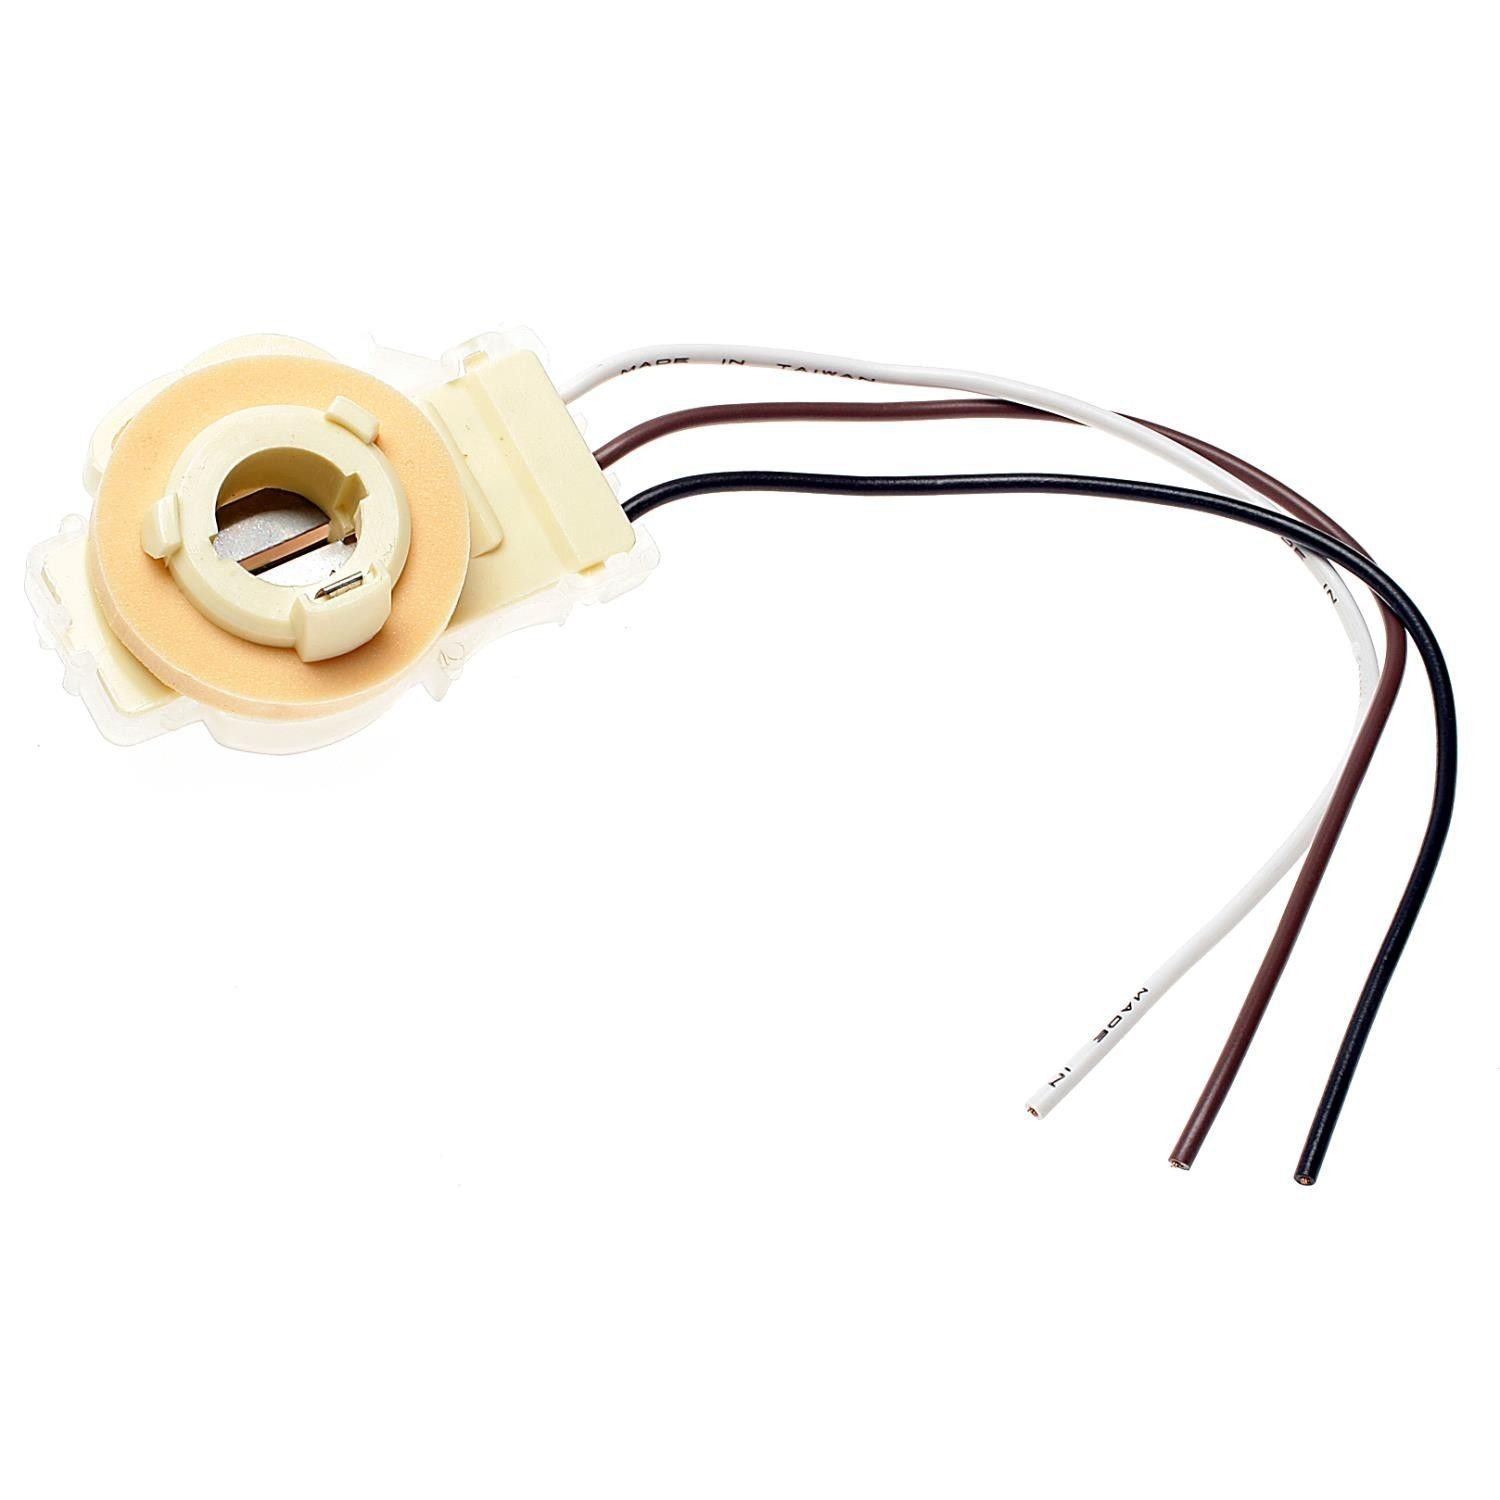 Chevrolet Impala Tail Lamp Socket Replacement Motormite Standard 1958 Chevy Light Wiring 1979 Ignition Hp4140 With 90 Deg 3 Wire